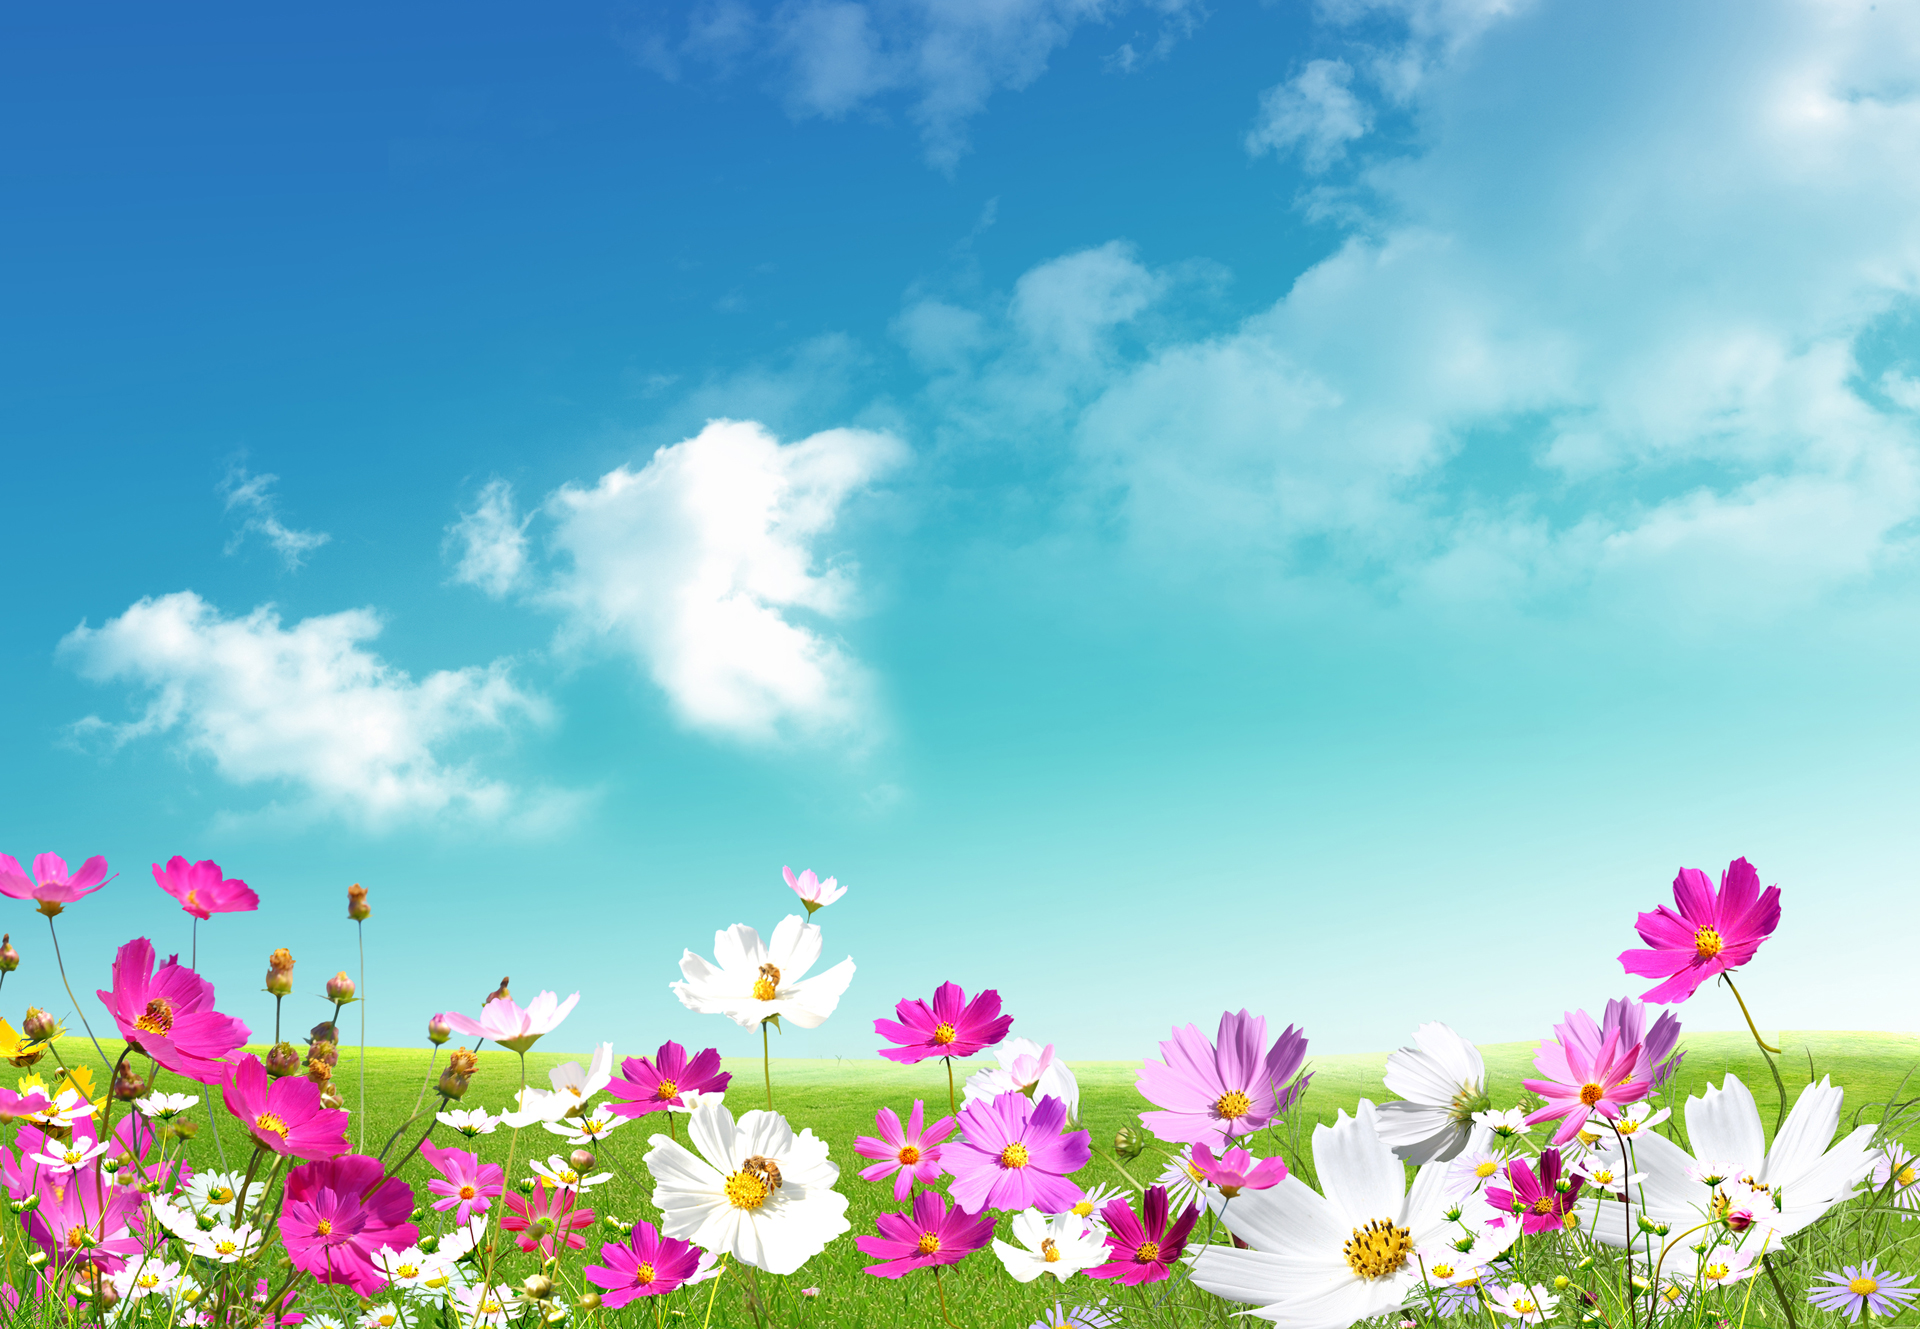 Spring Wallpaper Free Download.